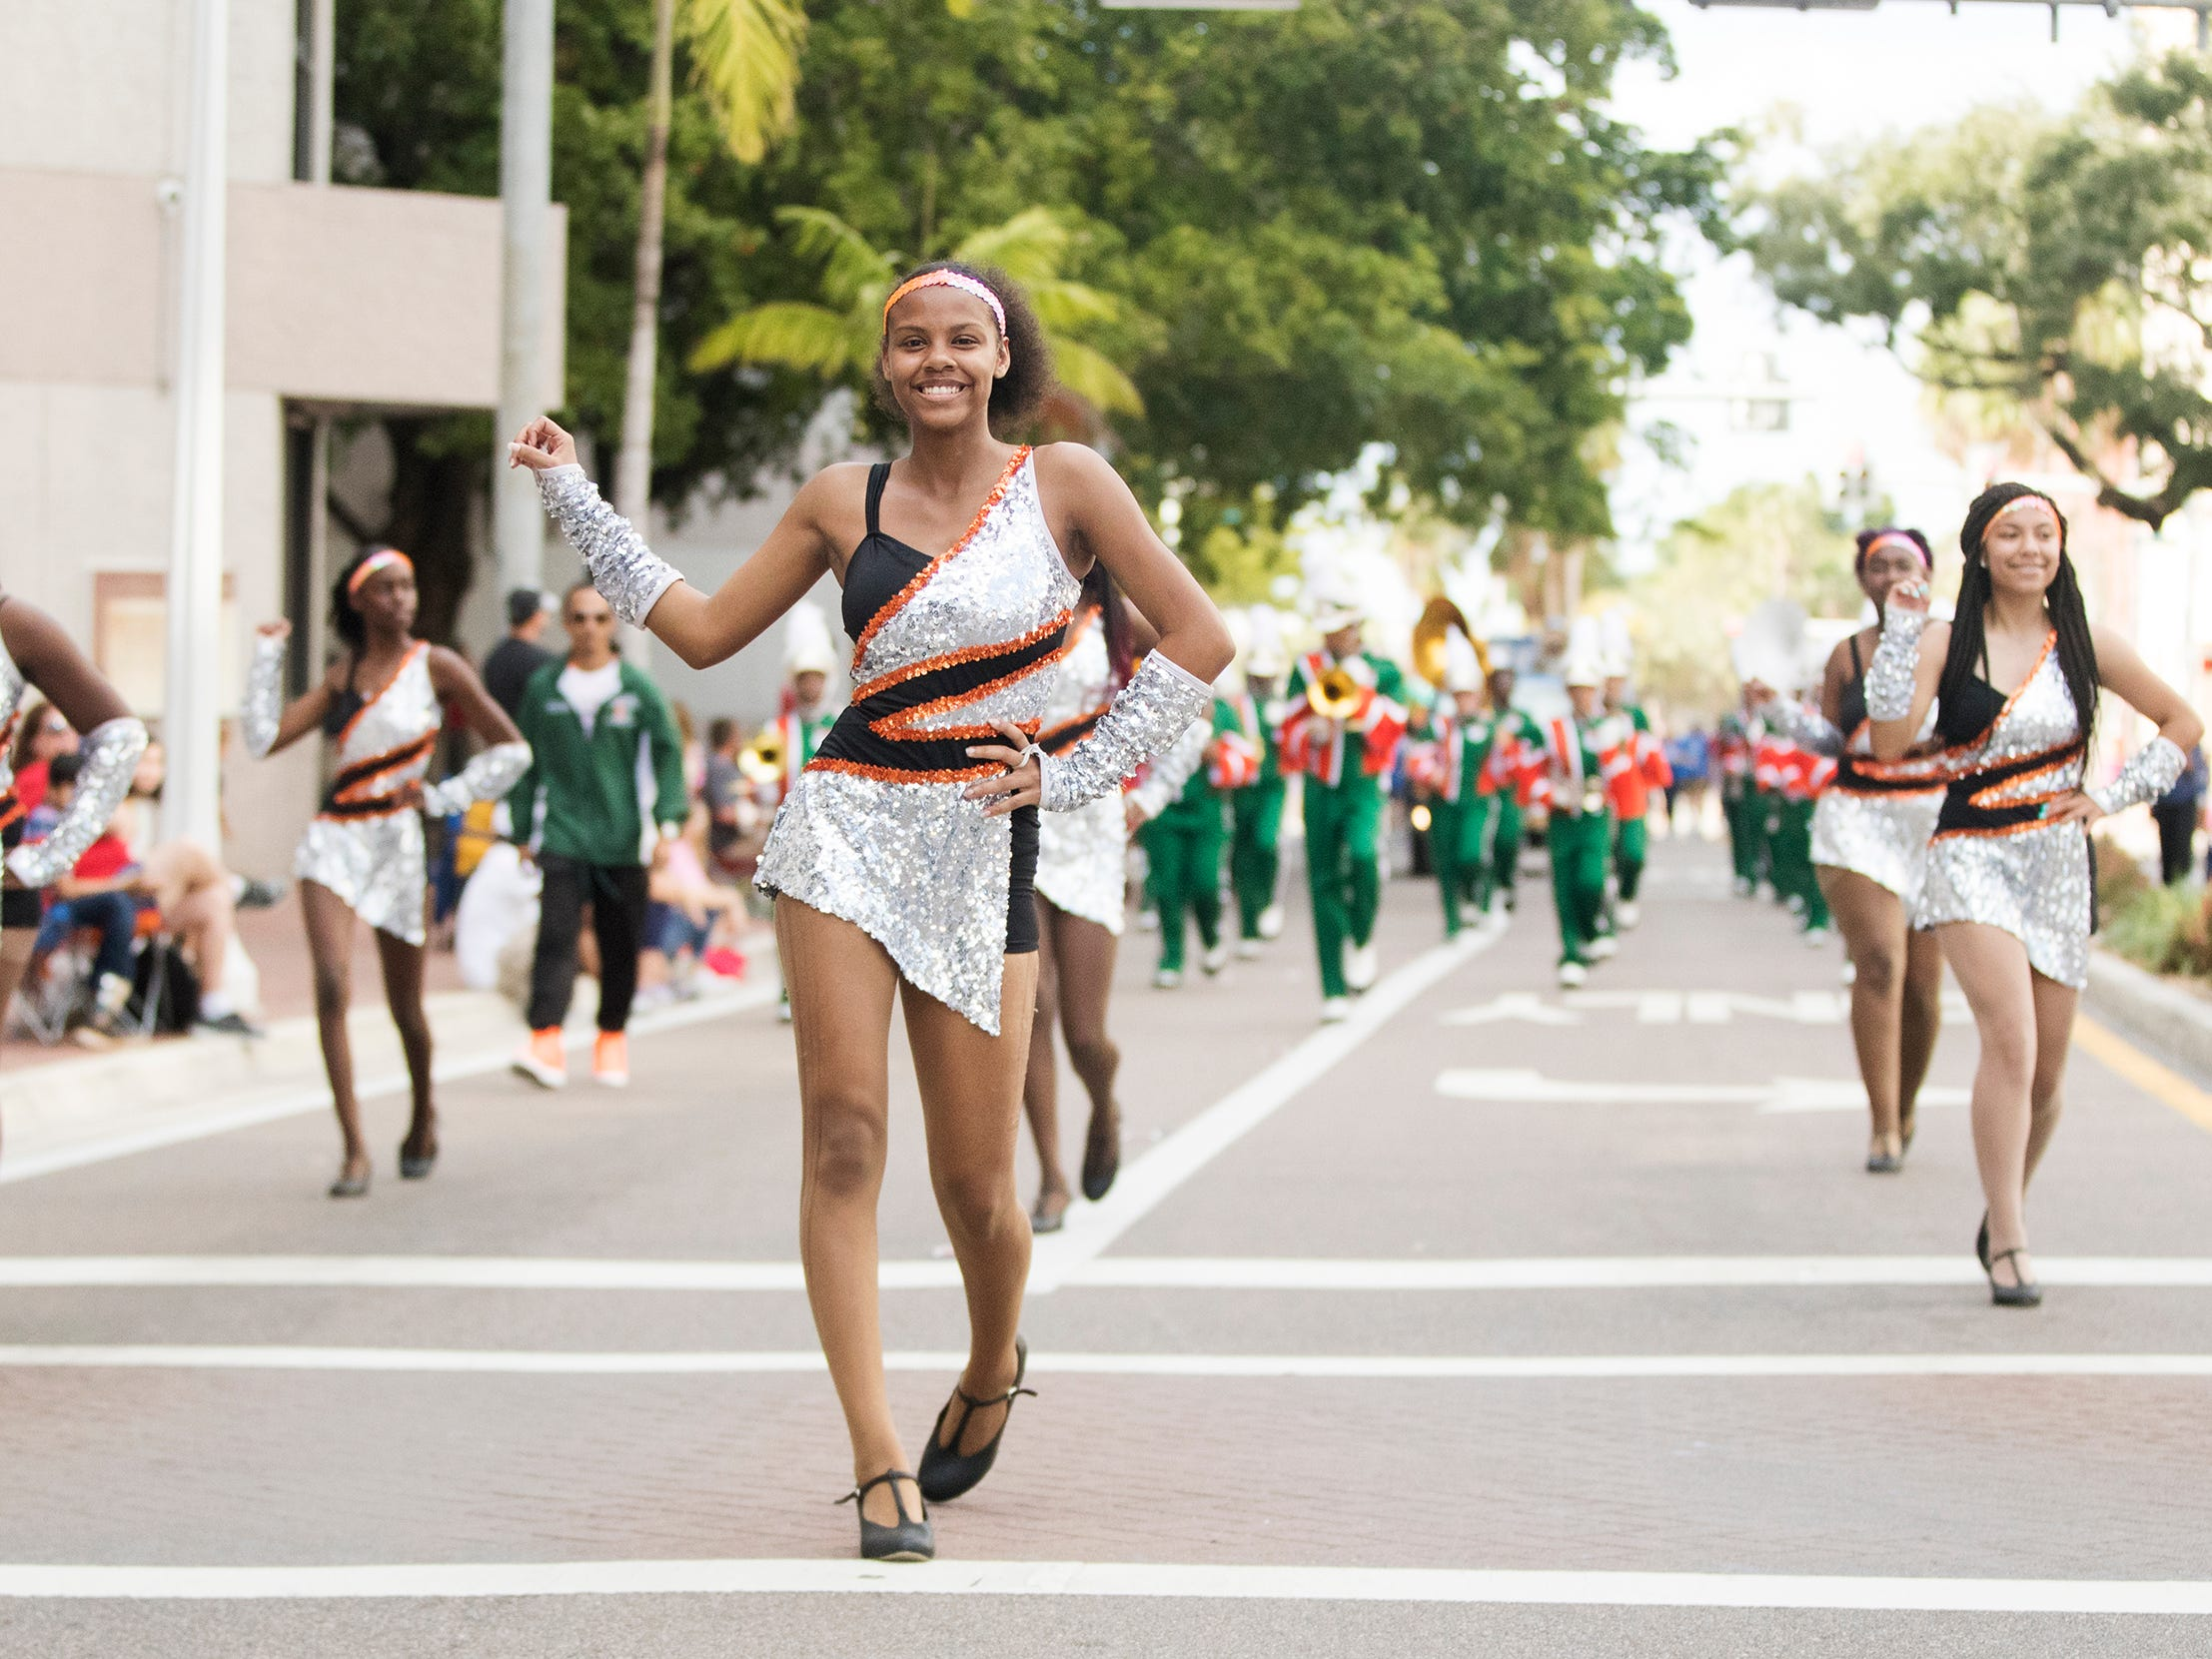 The Dunbar High School band marches in the Edison Festival of Light Junior Parade on Sunday in downtown Fort Myers. More than 70 groups participated in the annual event.